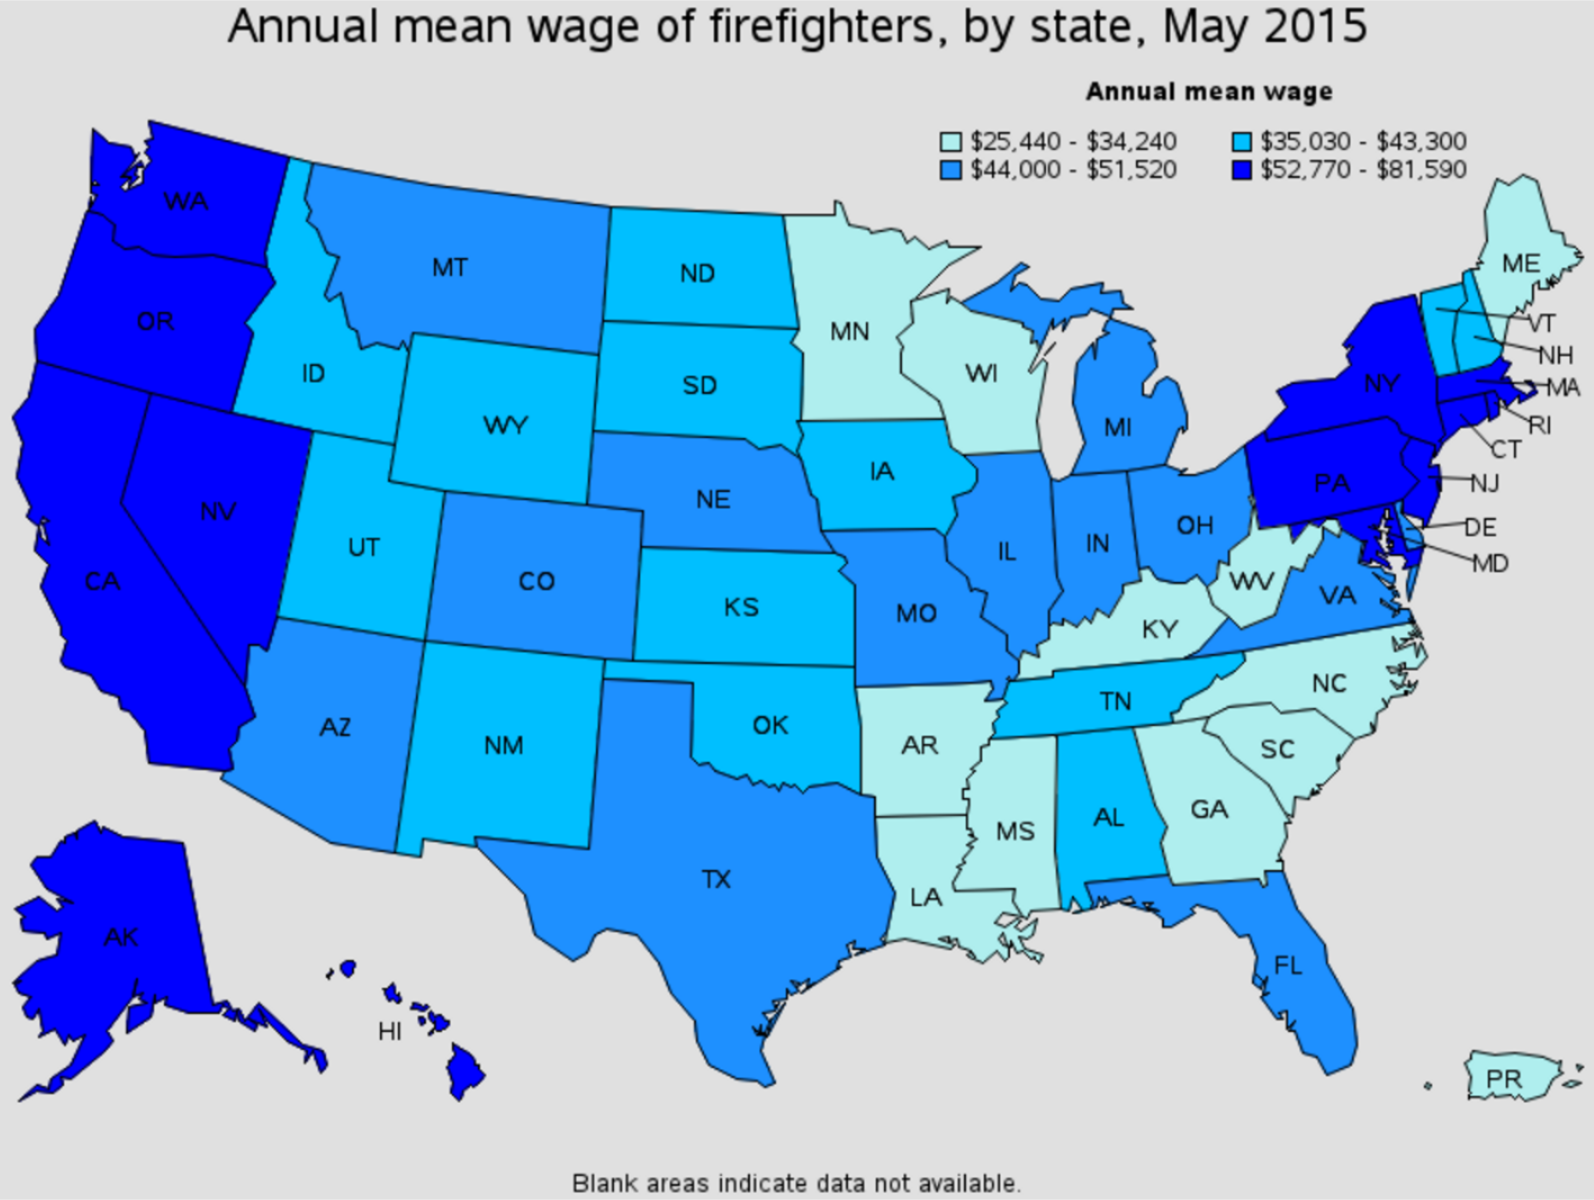 firefighter average salary by state Woodbridge Virginia